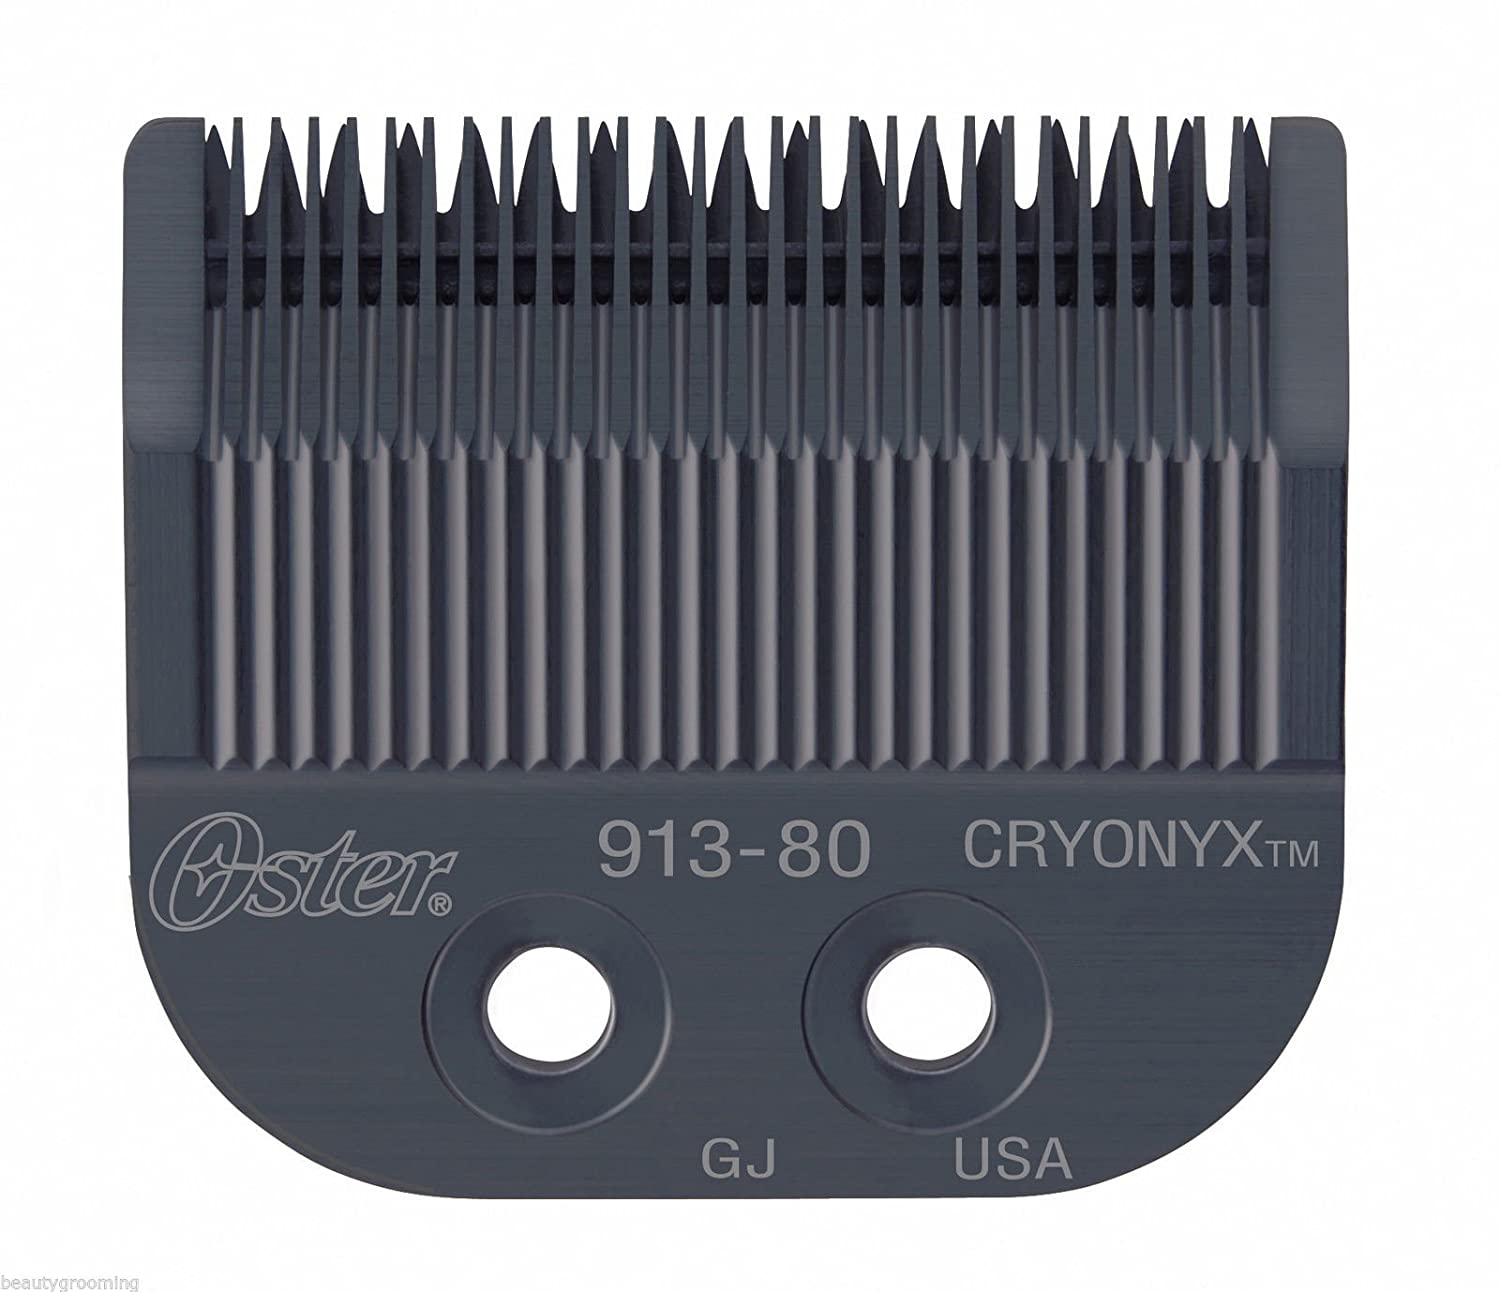 Oster replacement clipper blade for the Sable Topaz and Fast Feed 23 clippers